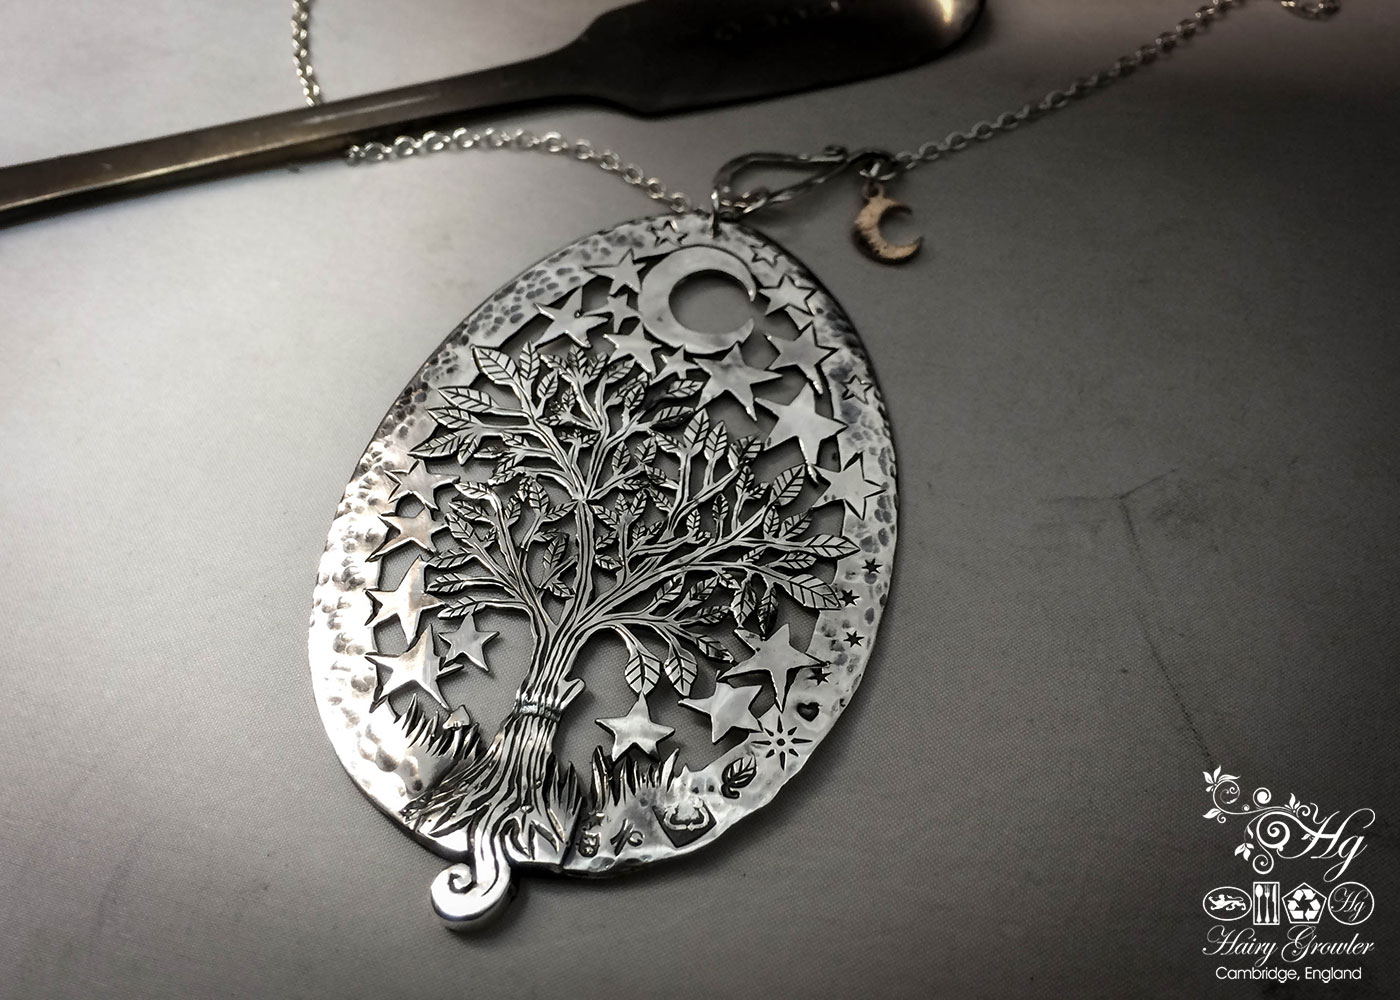 Handcrafted and recycled Victorian silver spoon magical tree of life necklace made in Cambridge